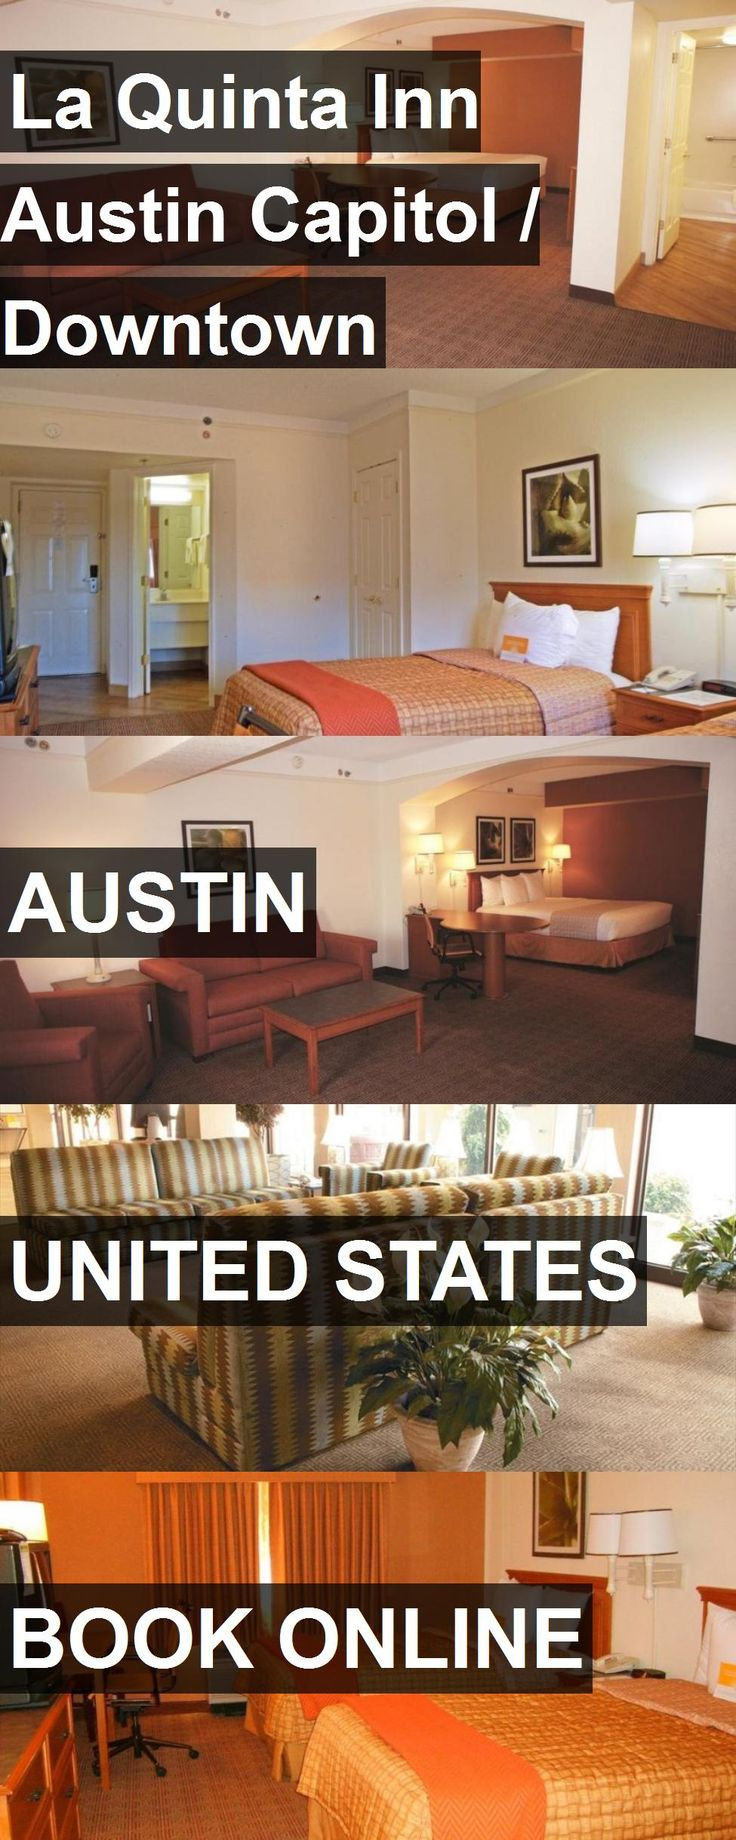 Hotel La Quinta Inn Austin Capitol / Downtown in Austin, United States. For more information, photos, reviews and best prices please follow the link. #UnitedStates #Austin #LaQuintaInnAustinCapitol/Downtown #hotel #travel #vacation